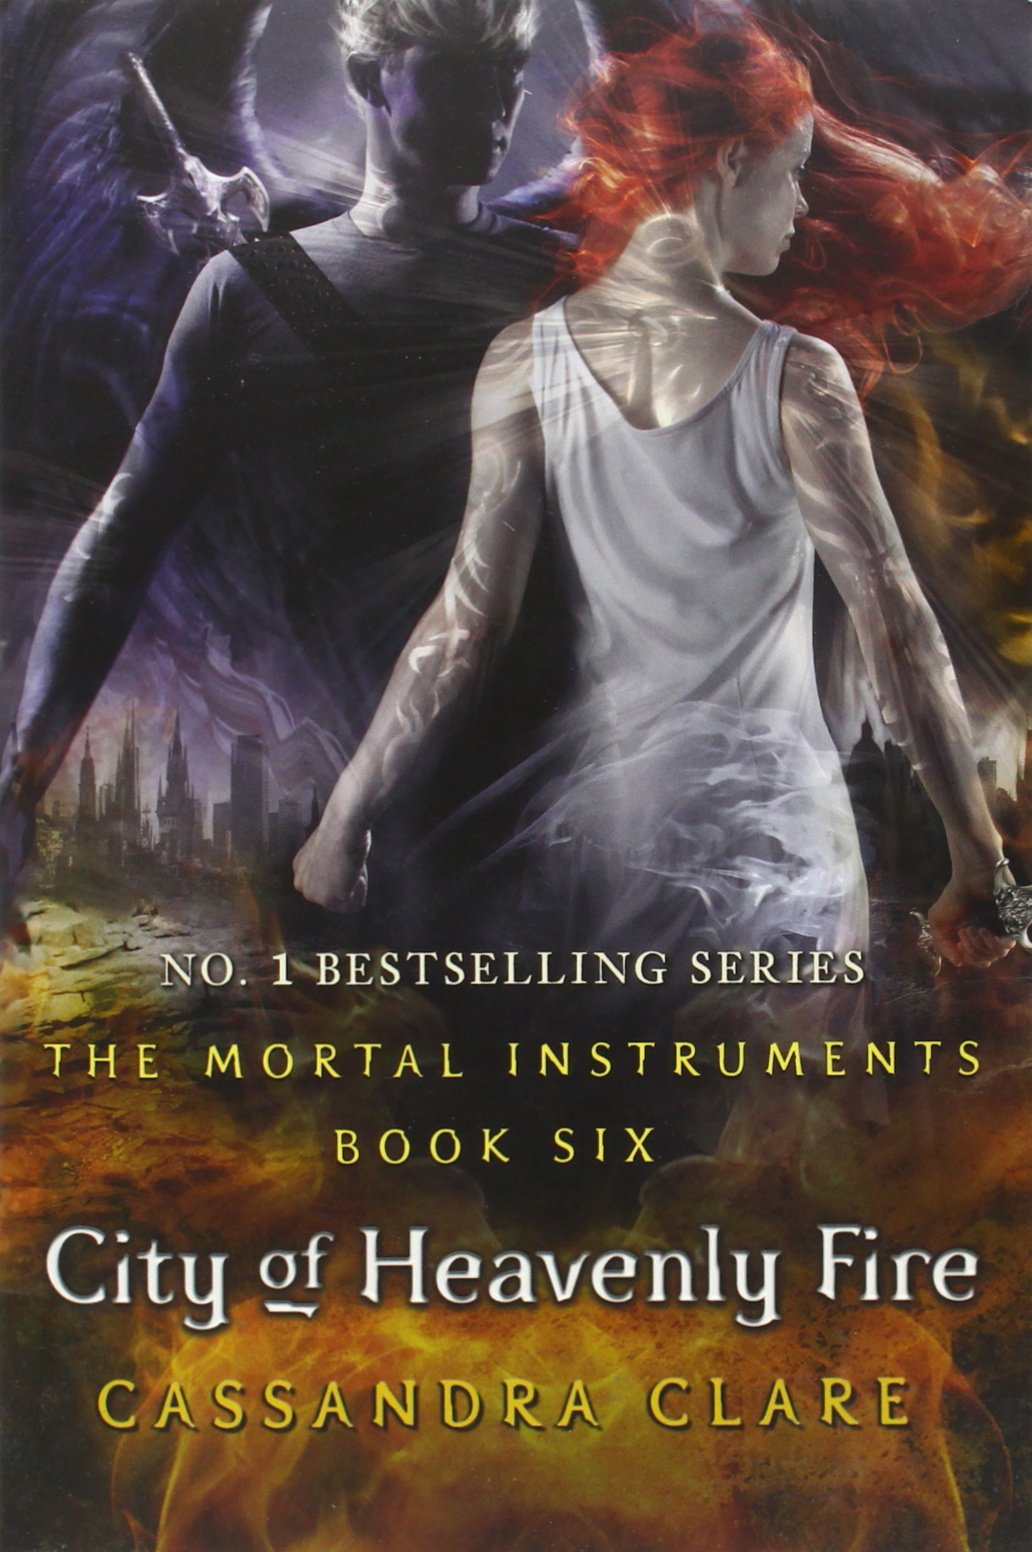 Image result for city of heavenly fire